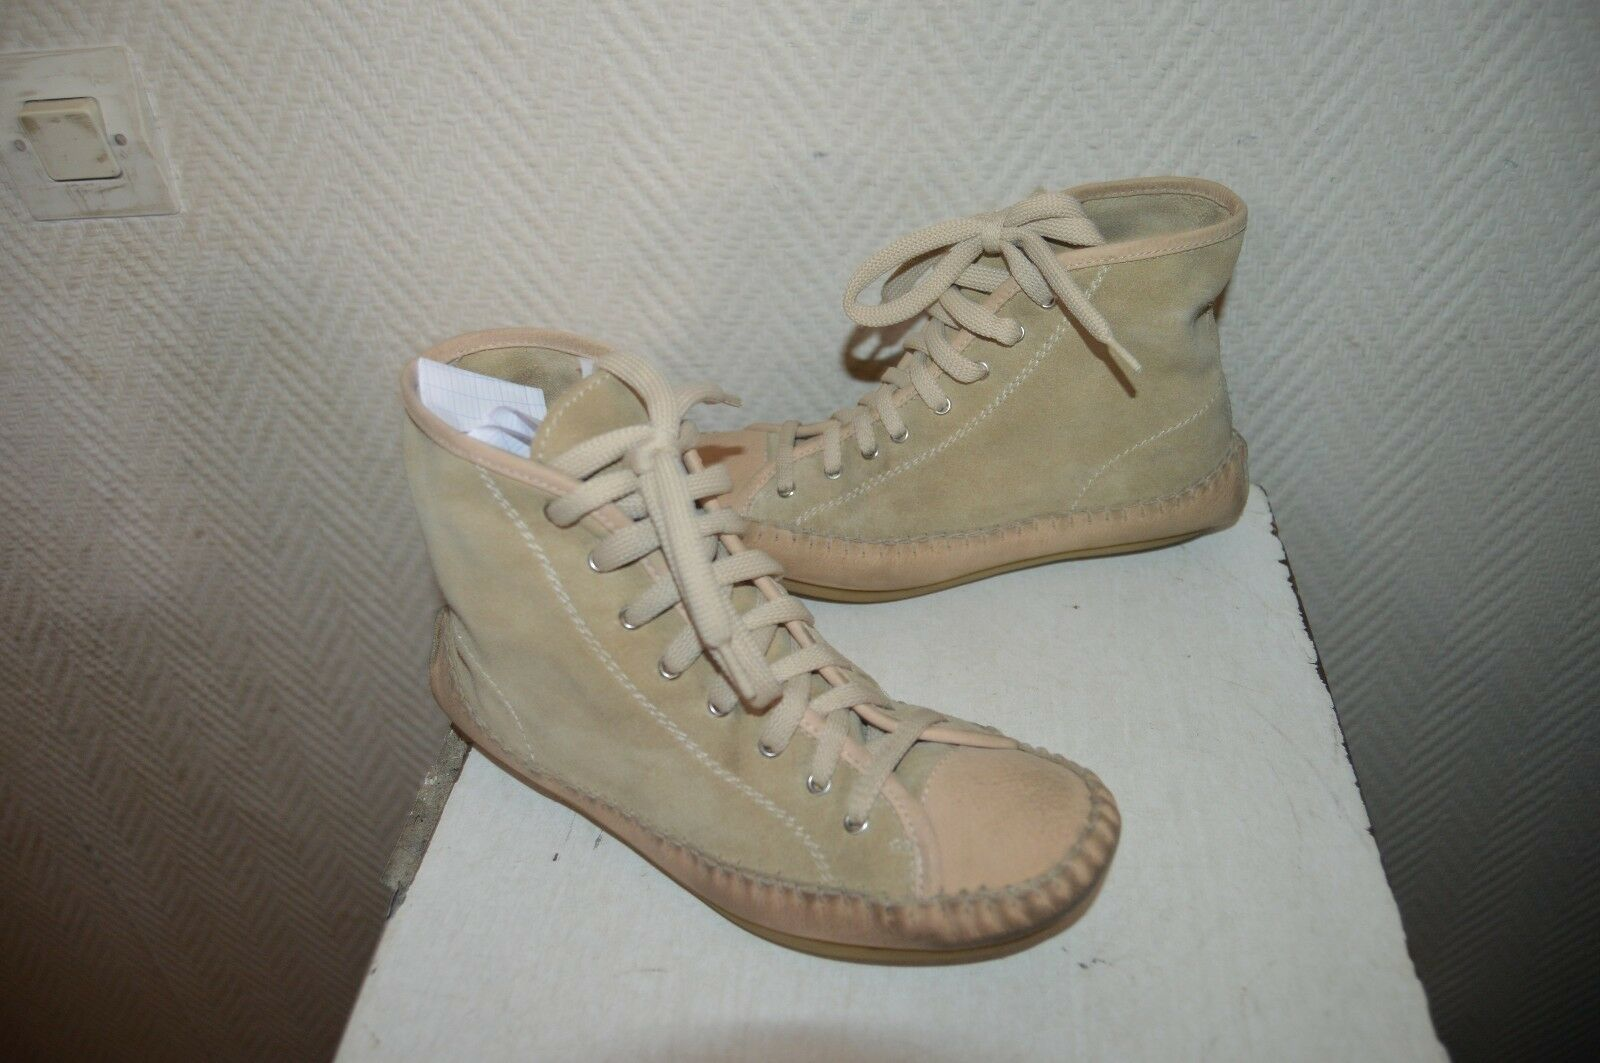 CHAUSSURE CUIR BASKET SEE BY CHLÖE size 36 SHOES shoes STIVALI INDIENNNE